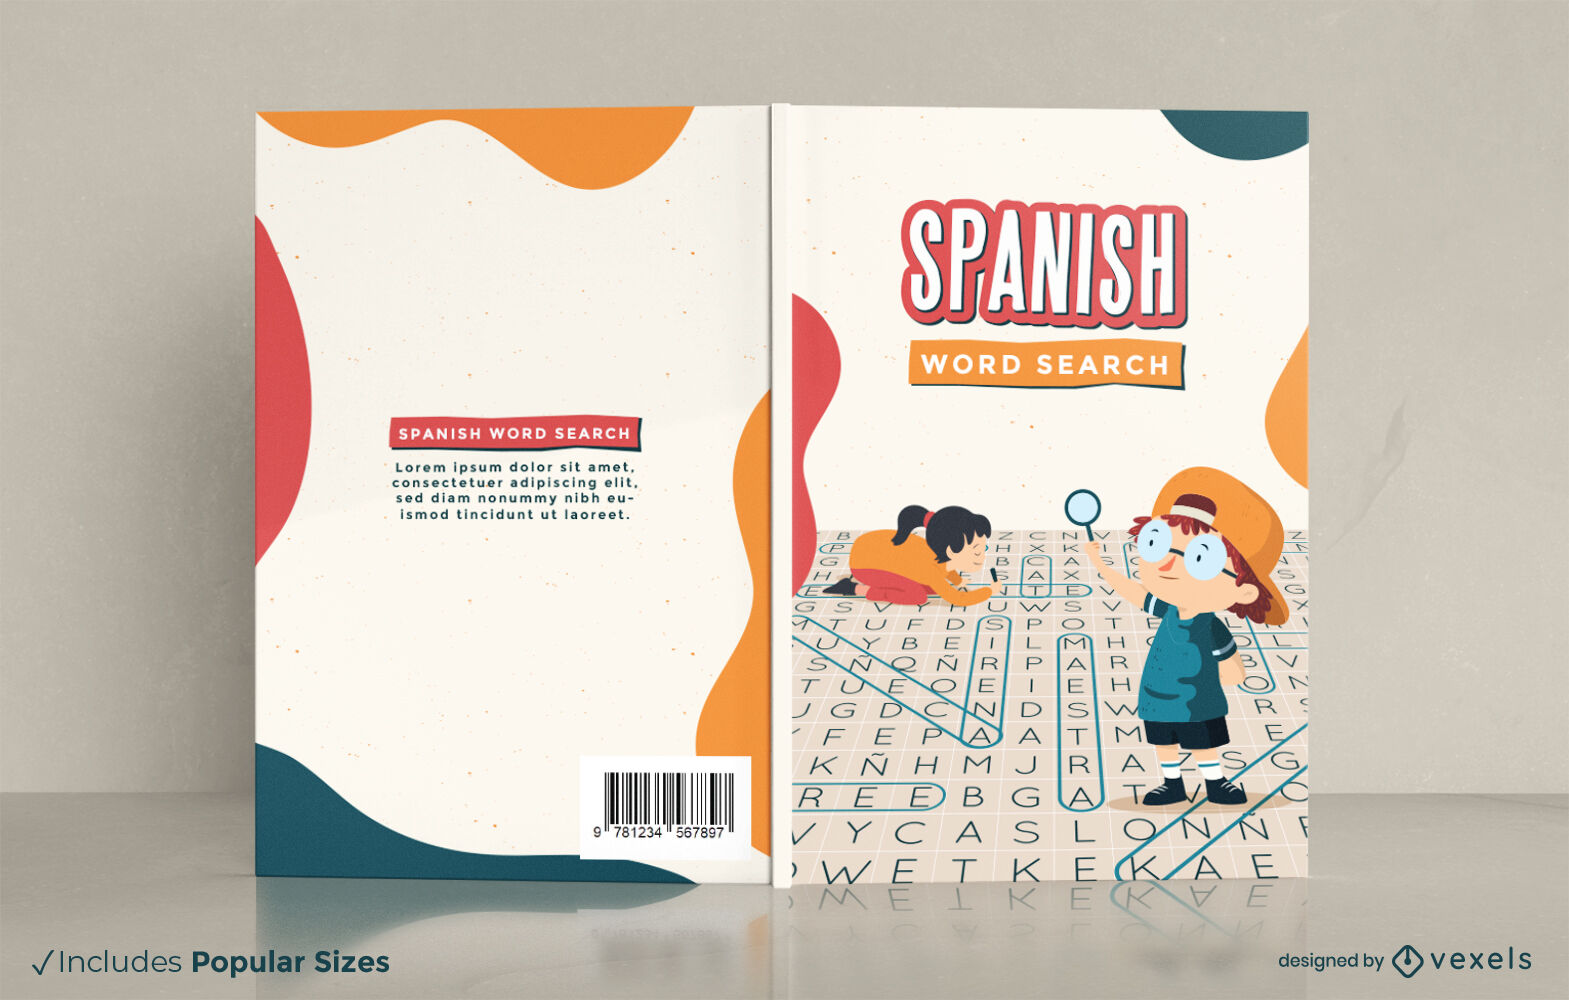 Spanish word search puzzle book cover design